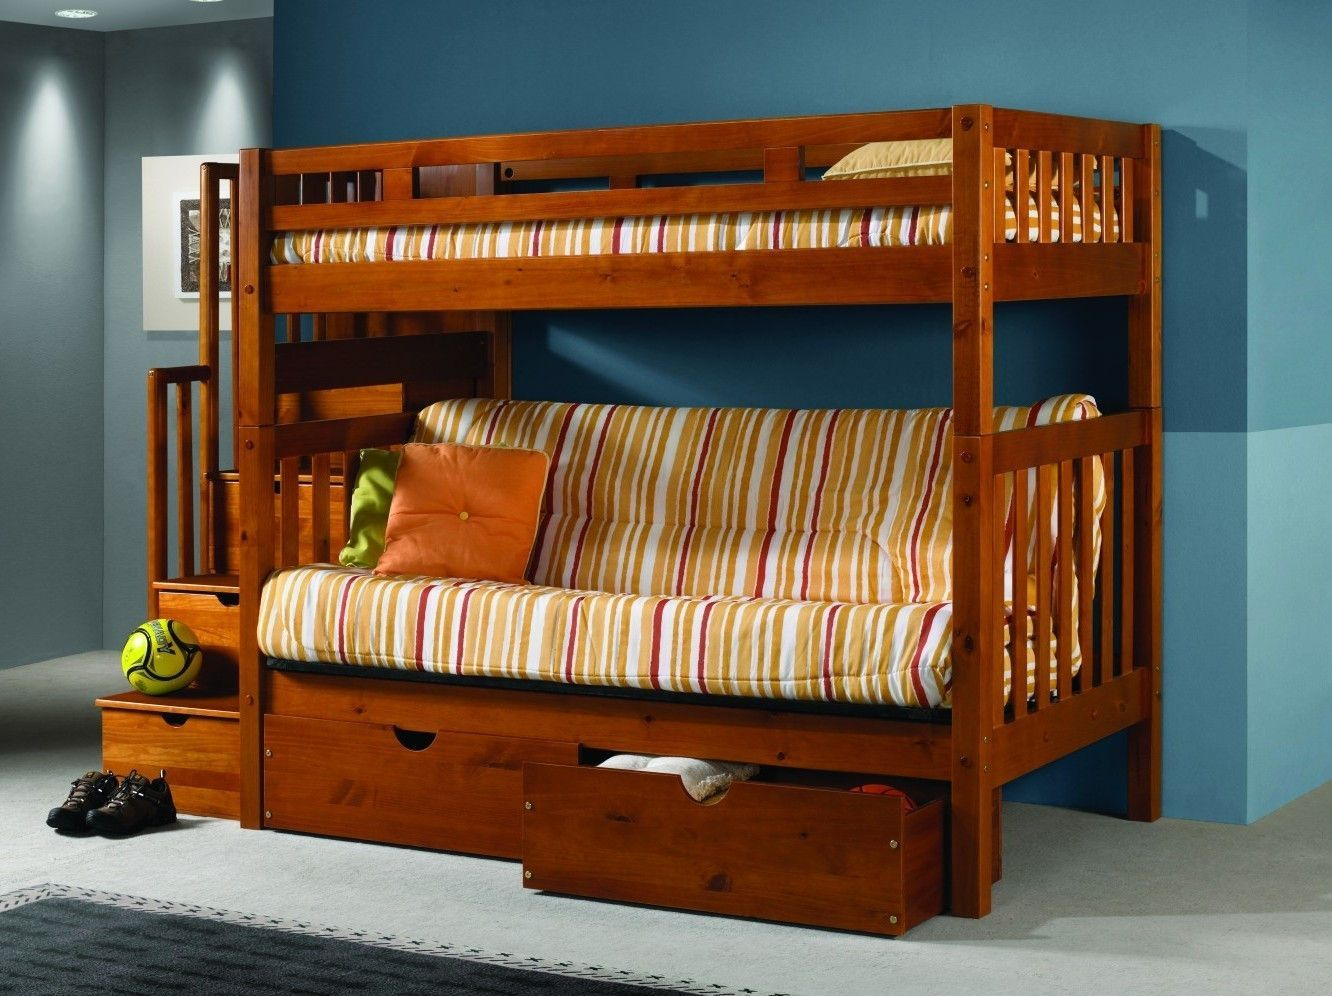 ryan honey bunk bed with futon stairs and storage bunk bed